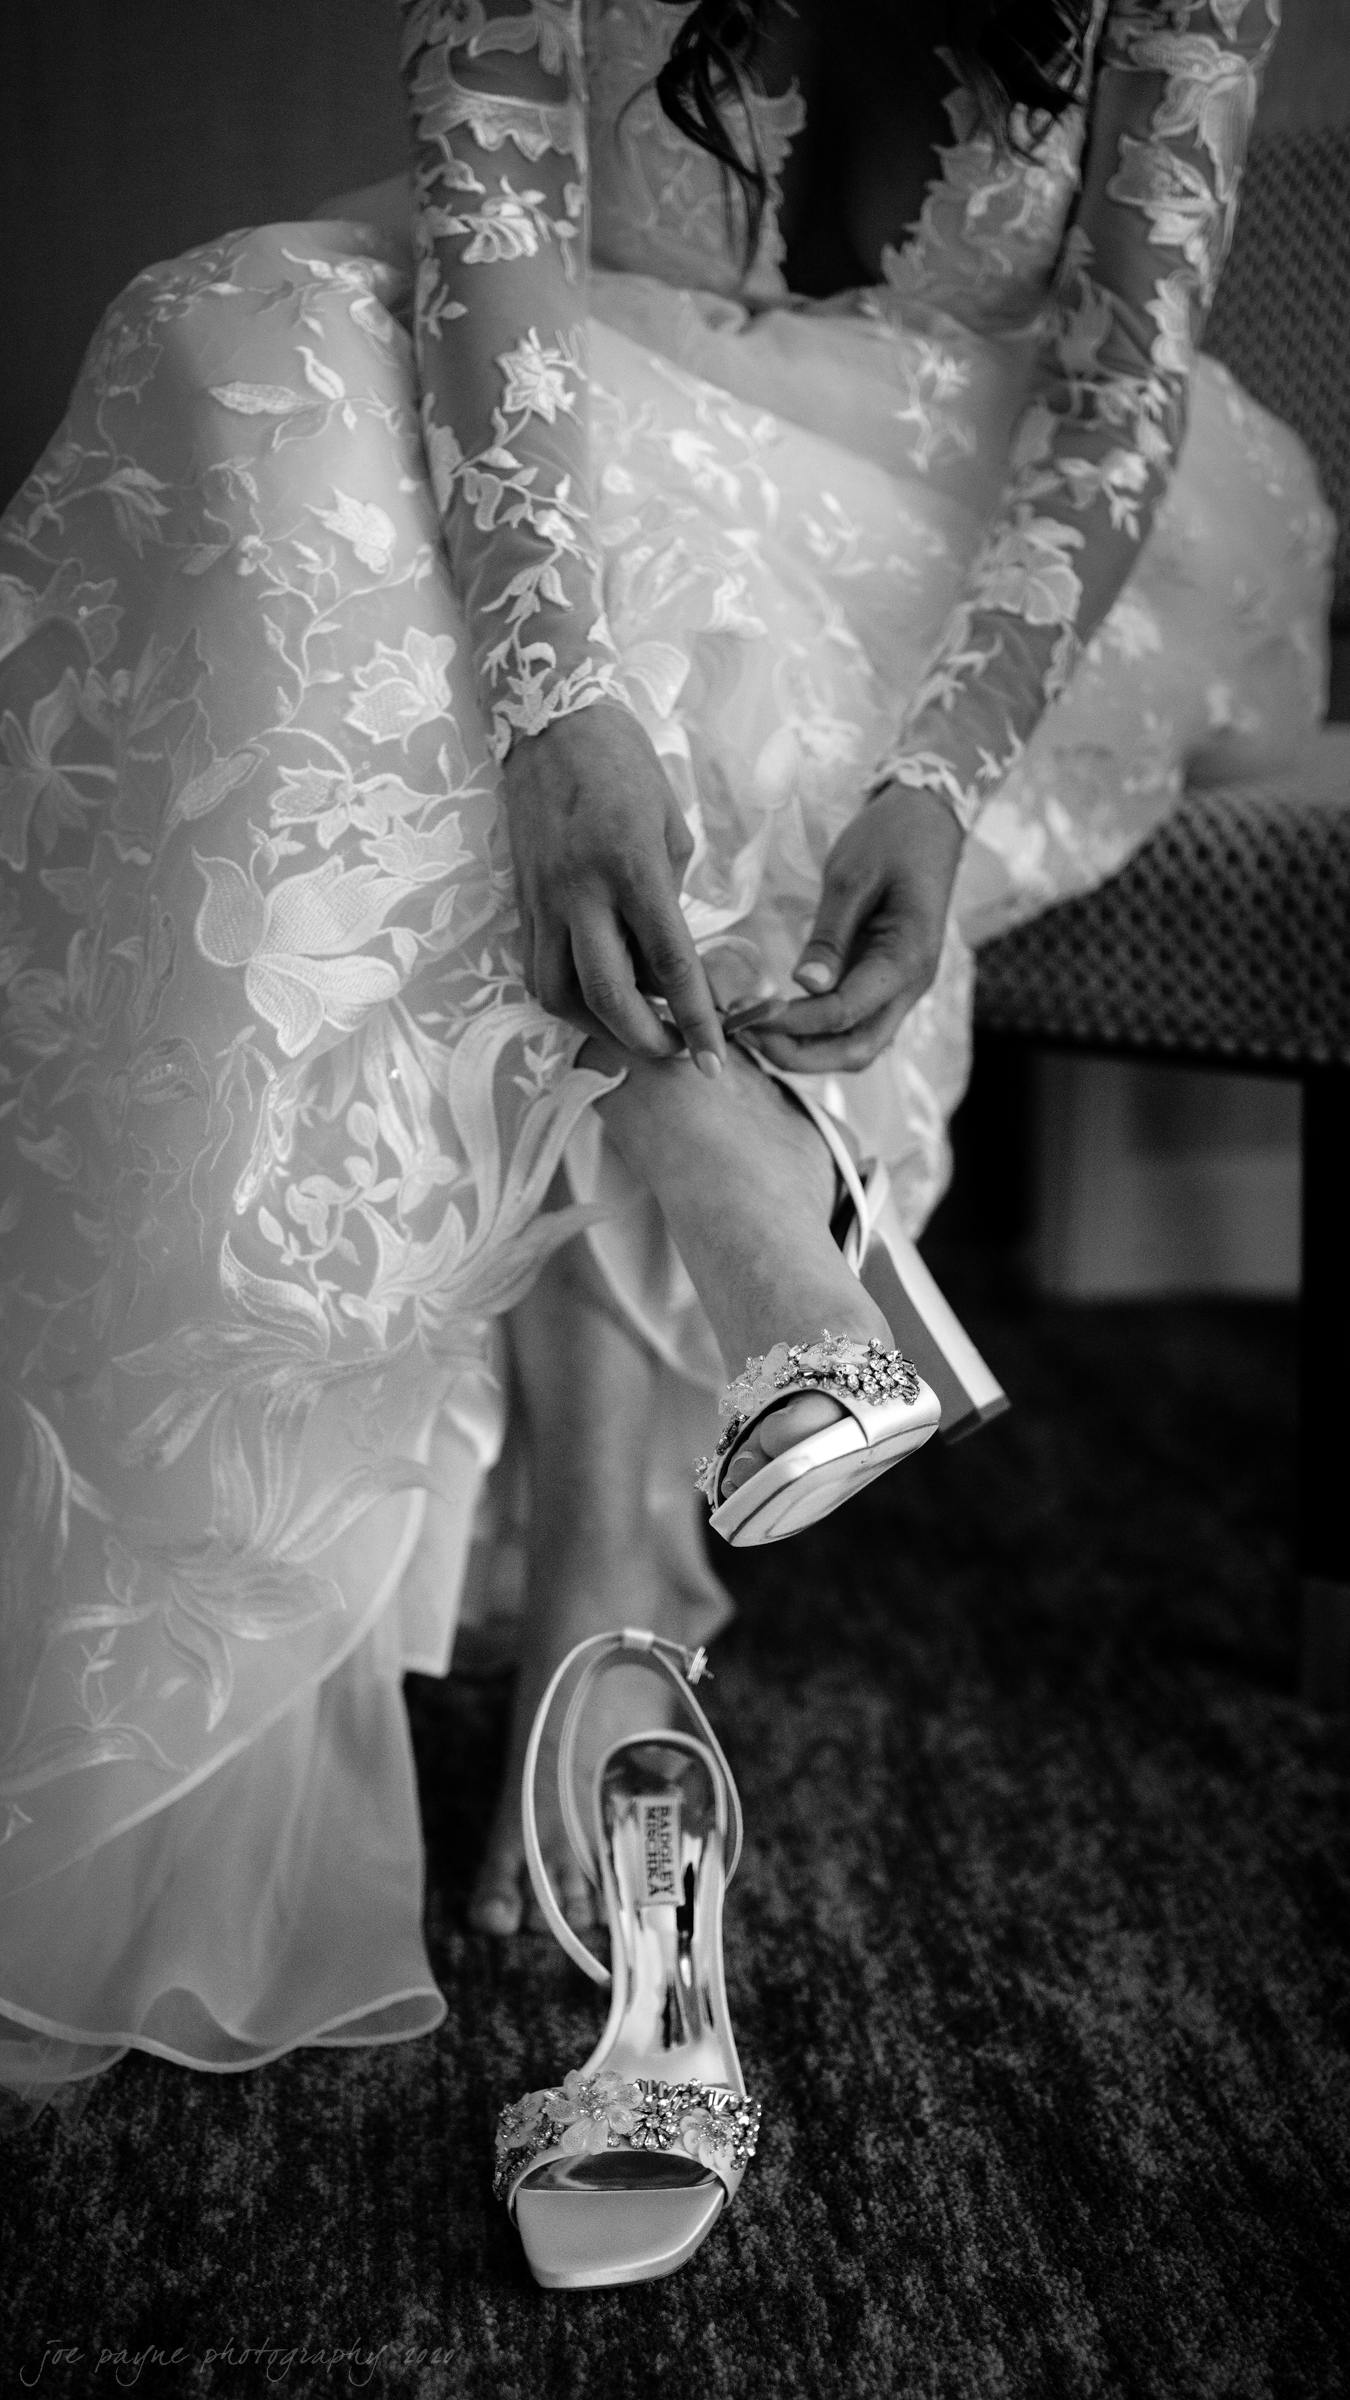 umstead hotel park wedding photography brittany harrison 5